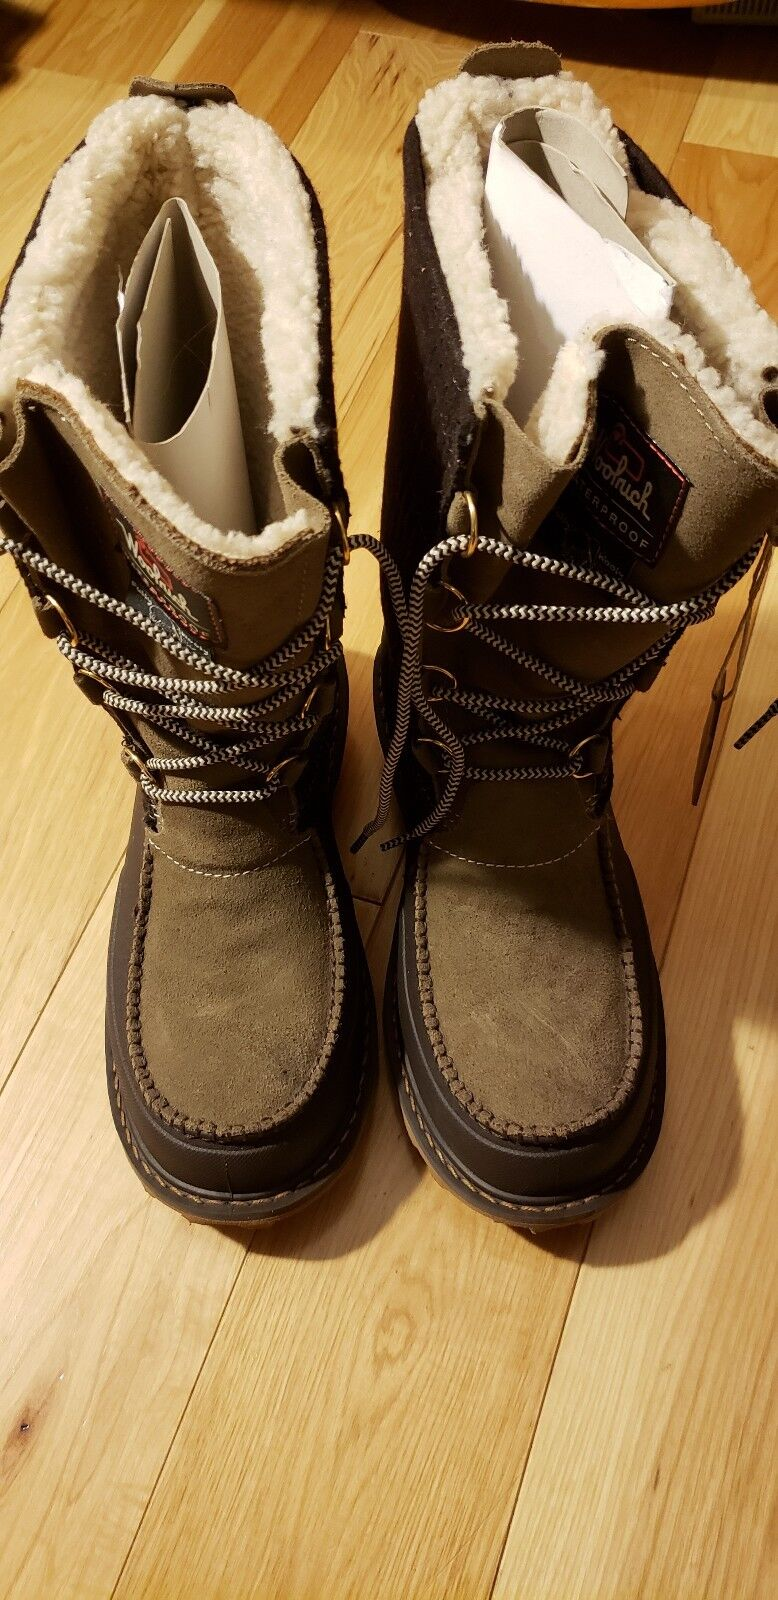 Woolrich Woolrich Woolrich fully wooly womens winter boots 461586